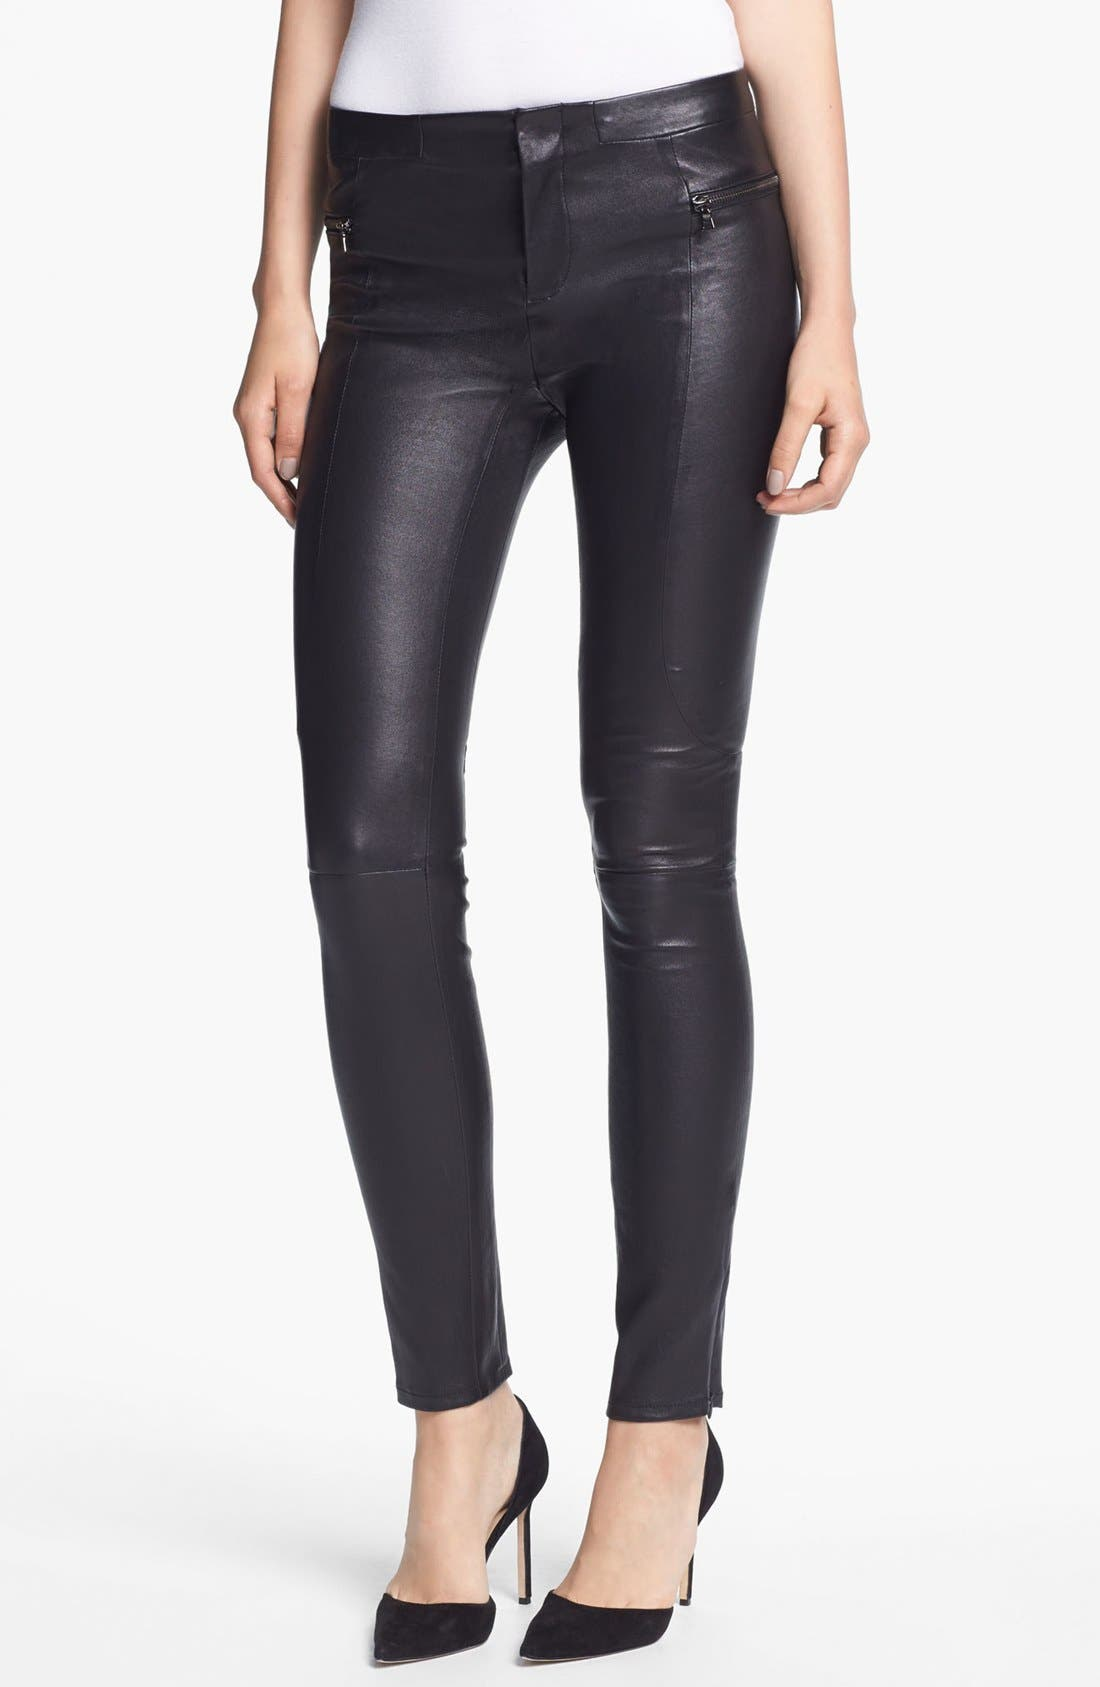 Alternate Image 1 Selected - J Brand Ready-to-Wear 'Minette' Stretch Leather Pants